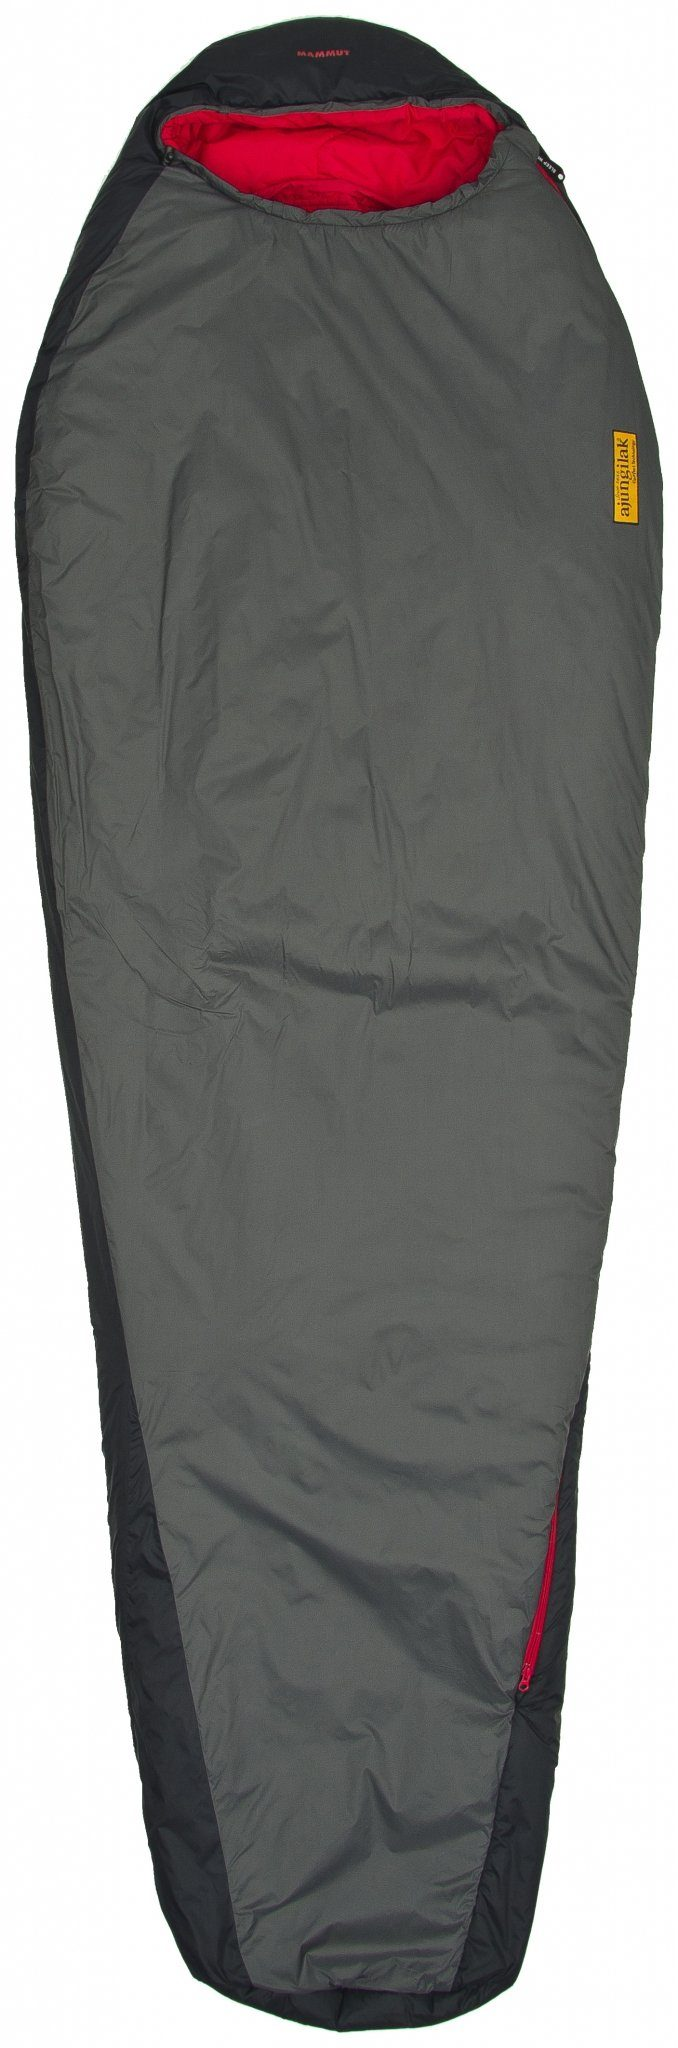 Mammut Schlafsack »Kompakt 3-Season 215 Sleeping Bag«